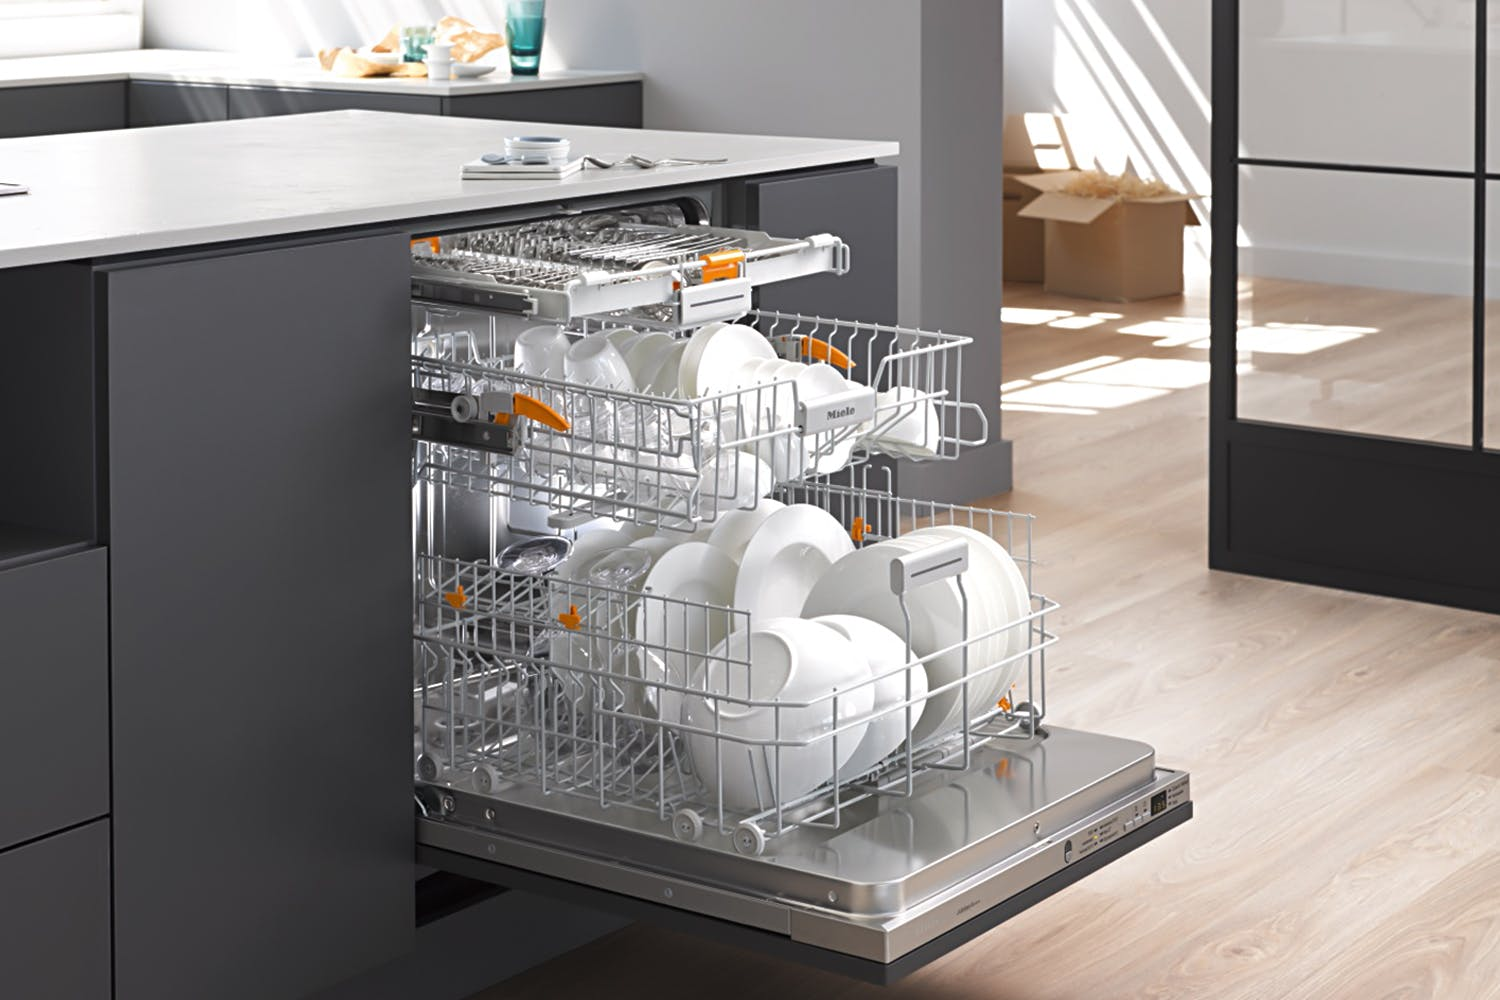 Miele G 4990 SCVi Jubilee  Fully-integrated, full-size dishwasher   with 3D cutlery tray for maximum convenience at an attractive entry level price